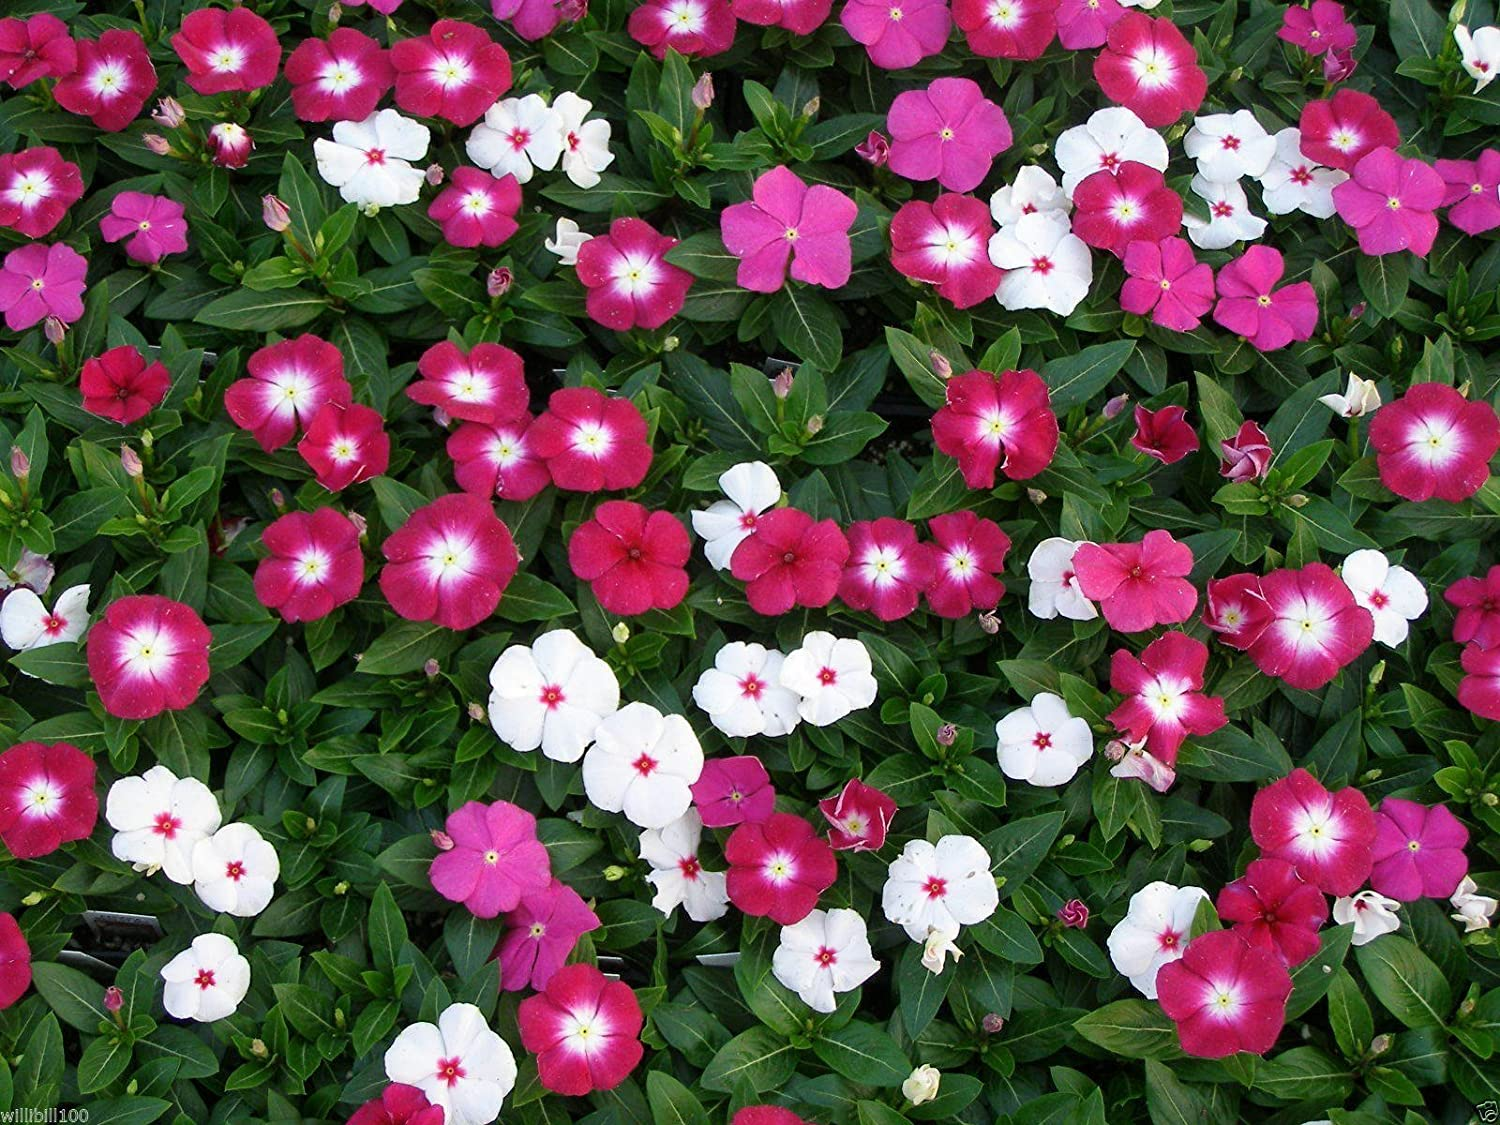 Amazon 300 Dwarf Little Mix Periwinkle Vinca Rosea Dwarf